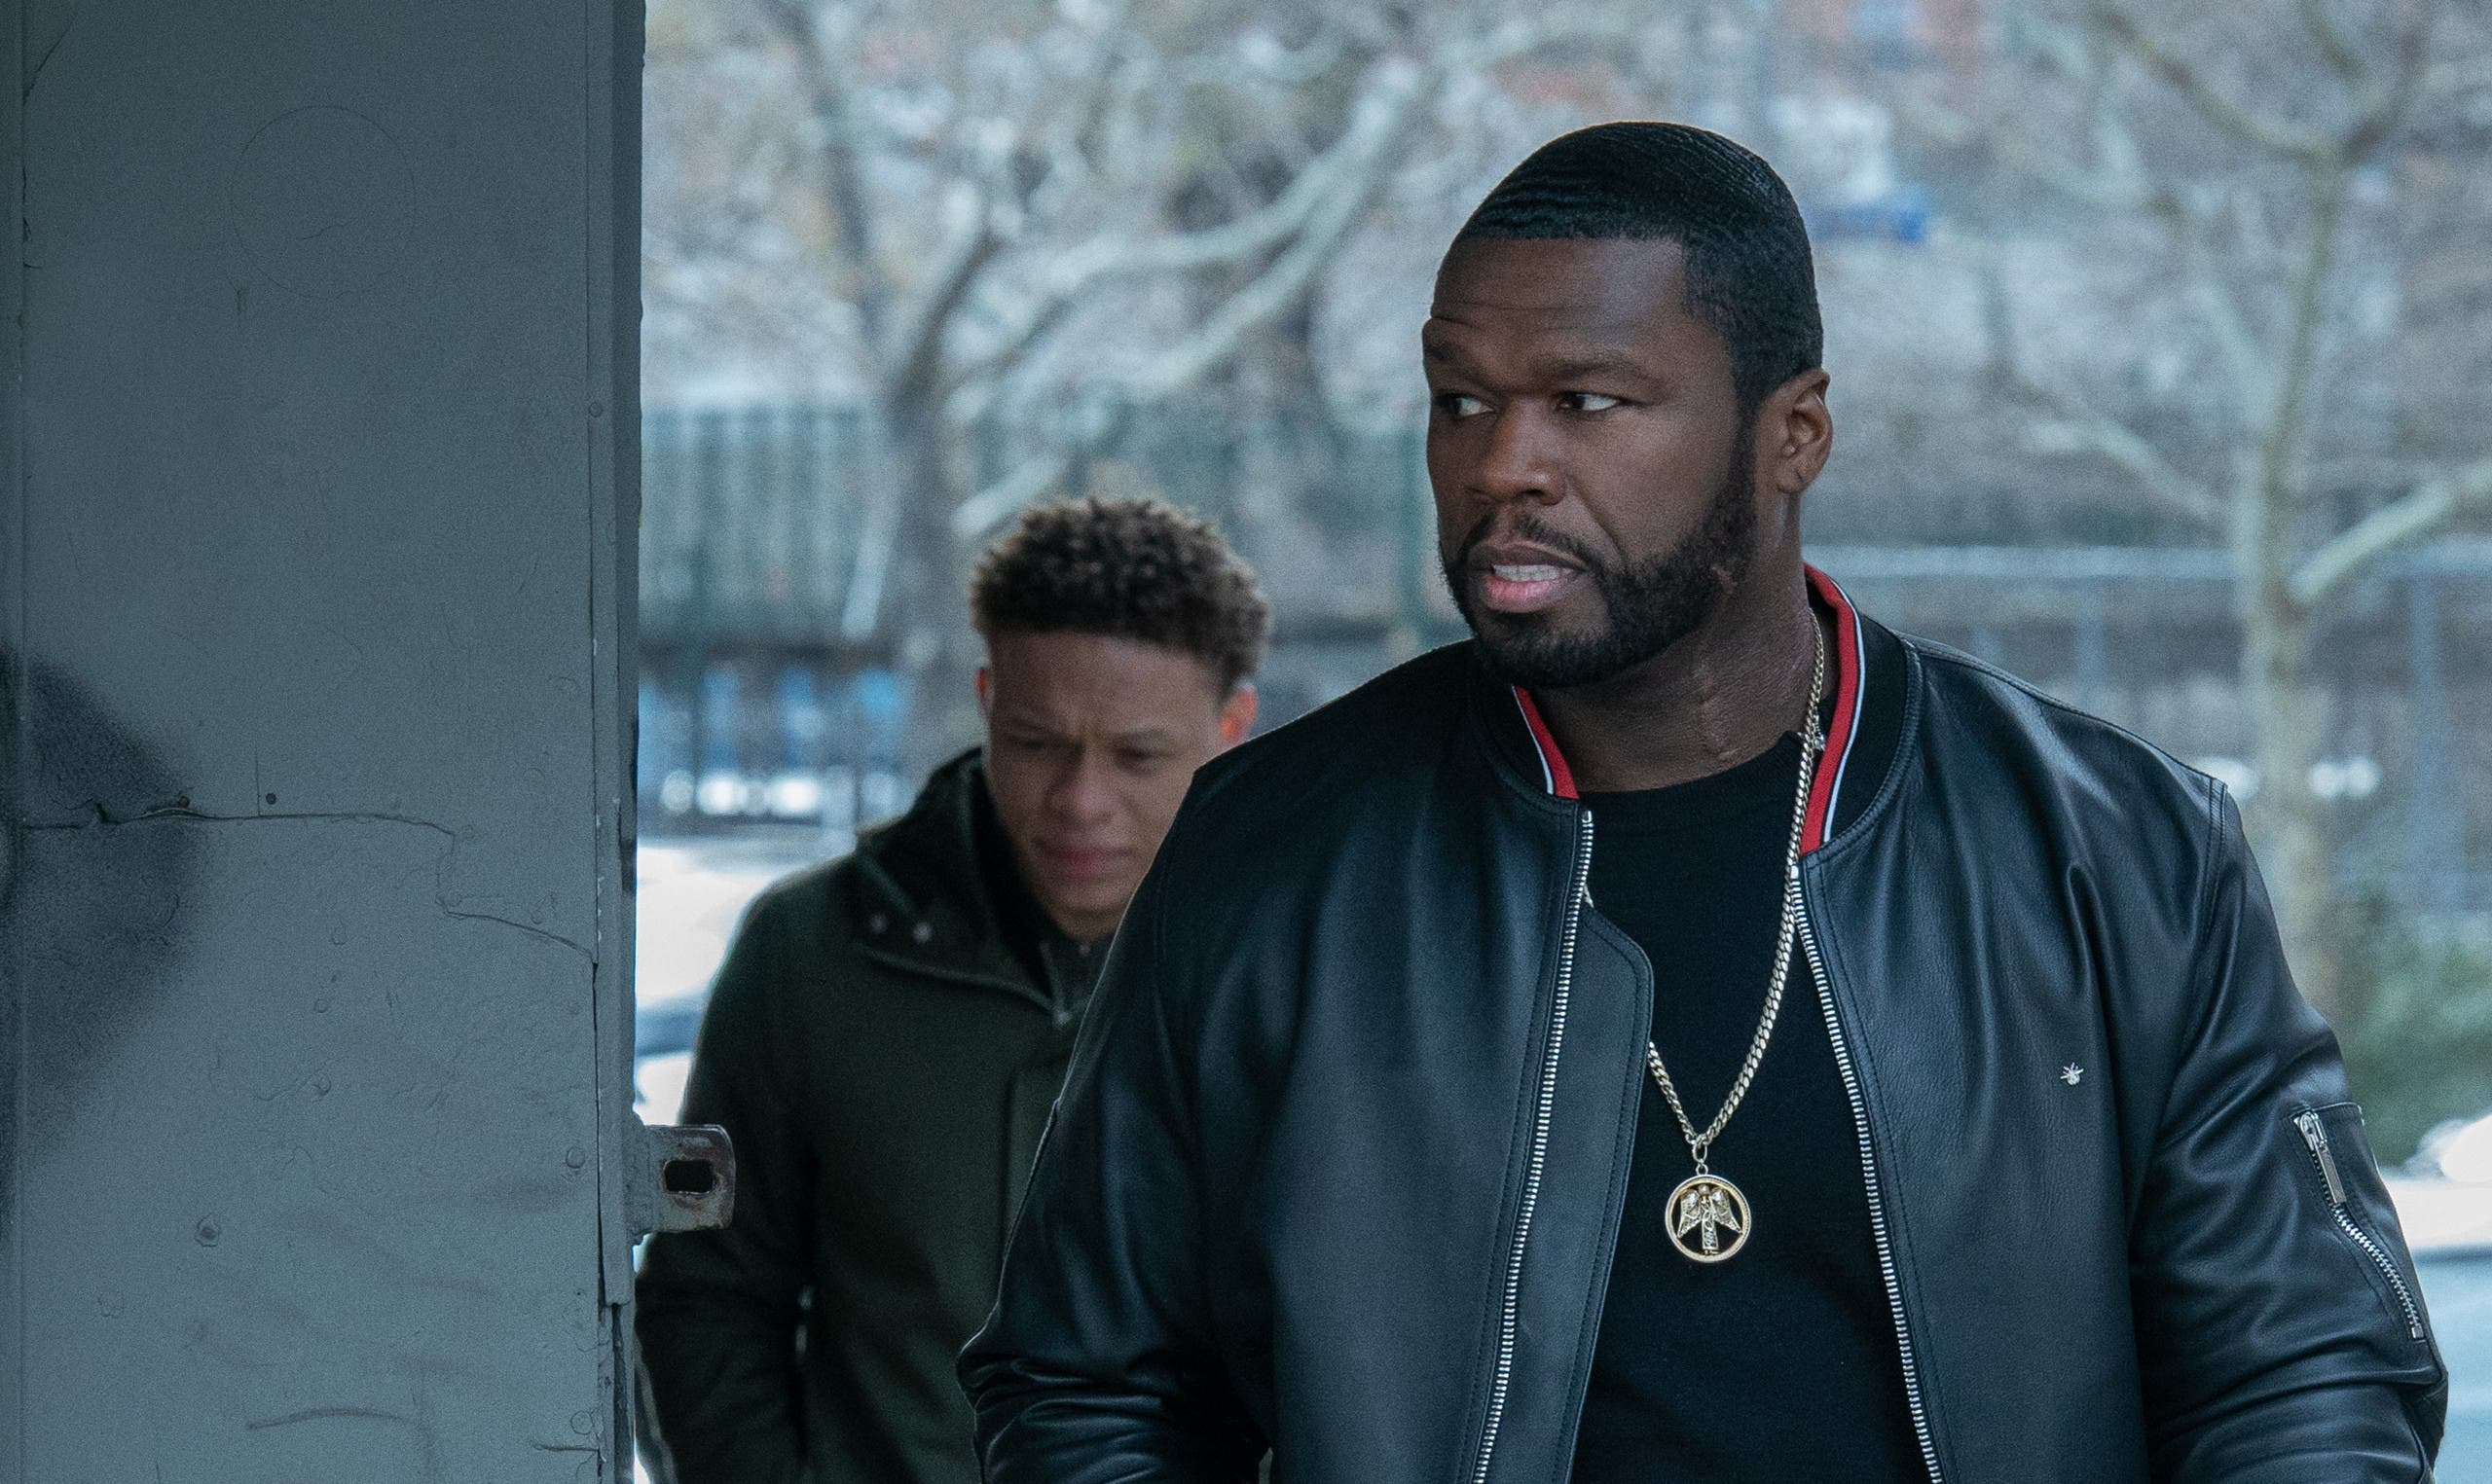 Power tells the story of James St. Patrick, a nightclub owner who is also a ruthless crime boss under the name of Ghost. (Supplied)